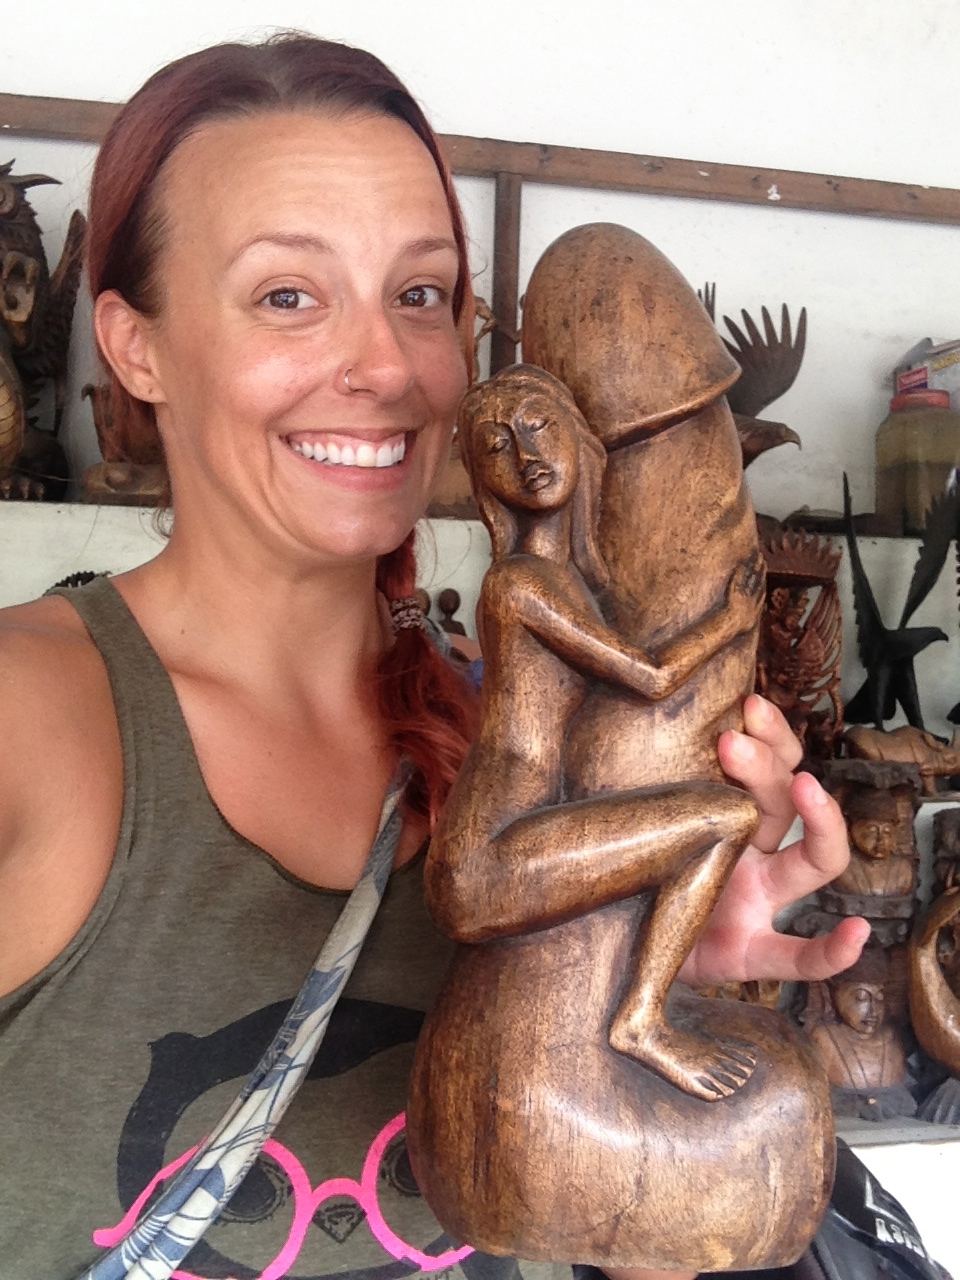 Don't worry, I did not buy this. But couldn't resist the photo op. Ah, Bali.